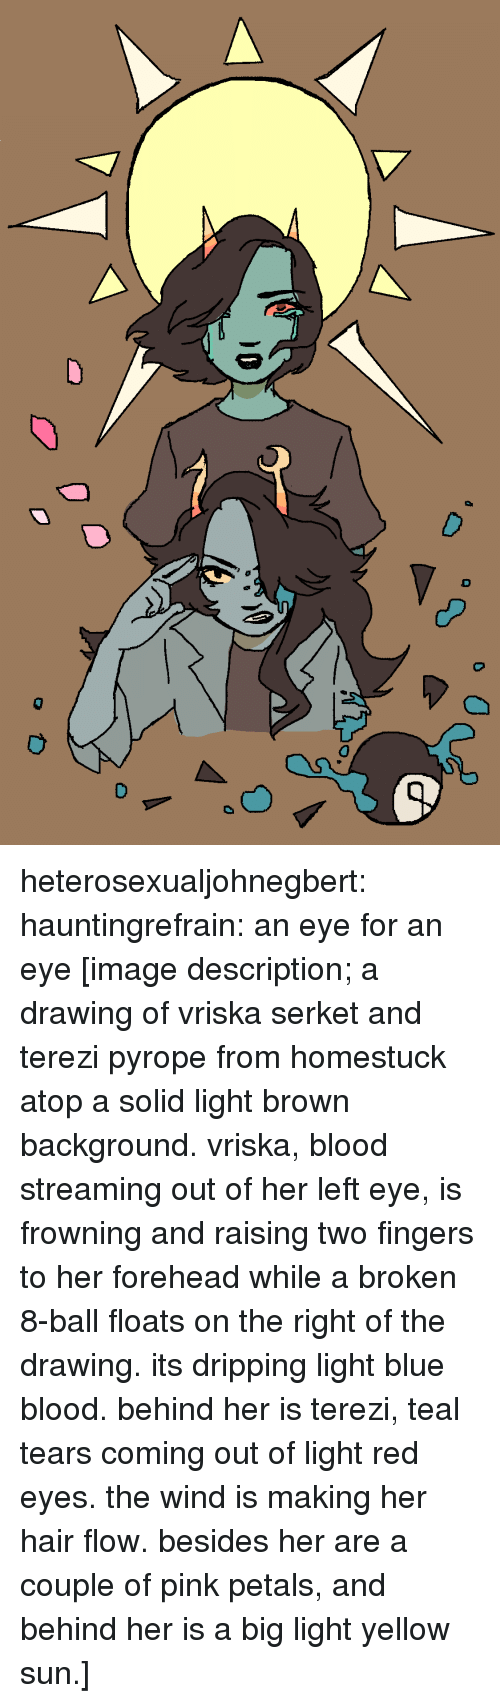 Target, Tumblr, and Blog: heterosexualjohnegbert:  hauntingrefrain: an eye for an eye [image description; a drawing of vriska serket and terezi pyrope from homestuck atop a solid light brown background. vriska, blood streaming out of her left eye, is frowning and raising two fingers to her forehead while a broken 8-ball floats on the right of the drawing. its dripping light blue blood. behind her is terezi, teal tears coming out of light red eyes. the wind is making her hair flow. besides her are a couple of pink petals, and behind her is a big light yellow sun.]